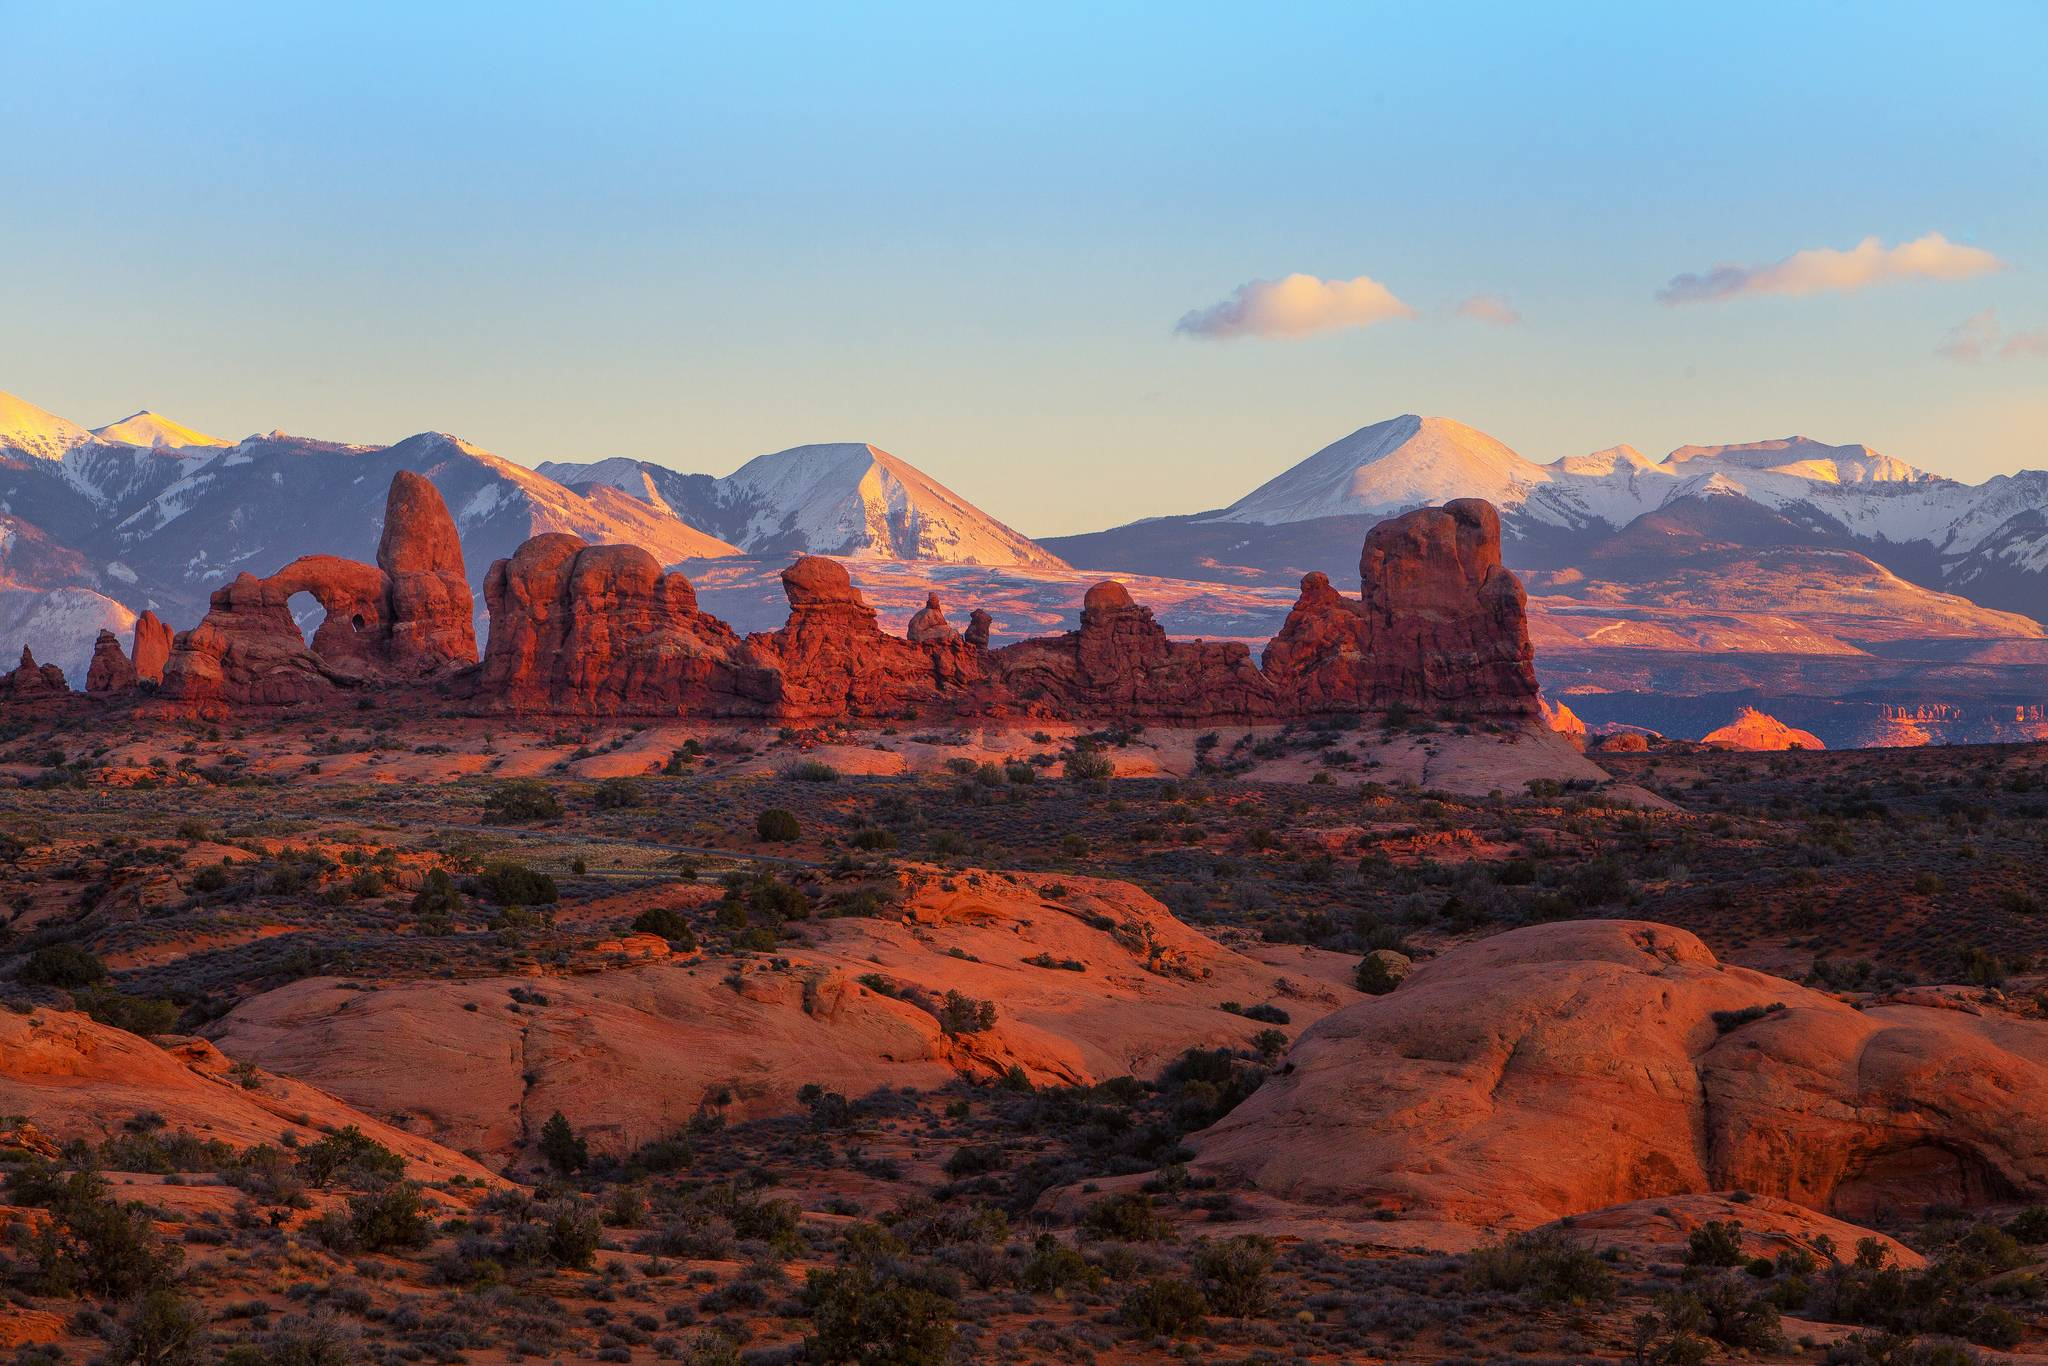 Download wallpaper Utah Arches National Park tower arch 2048x1366